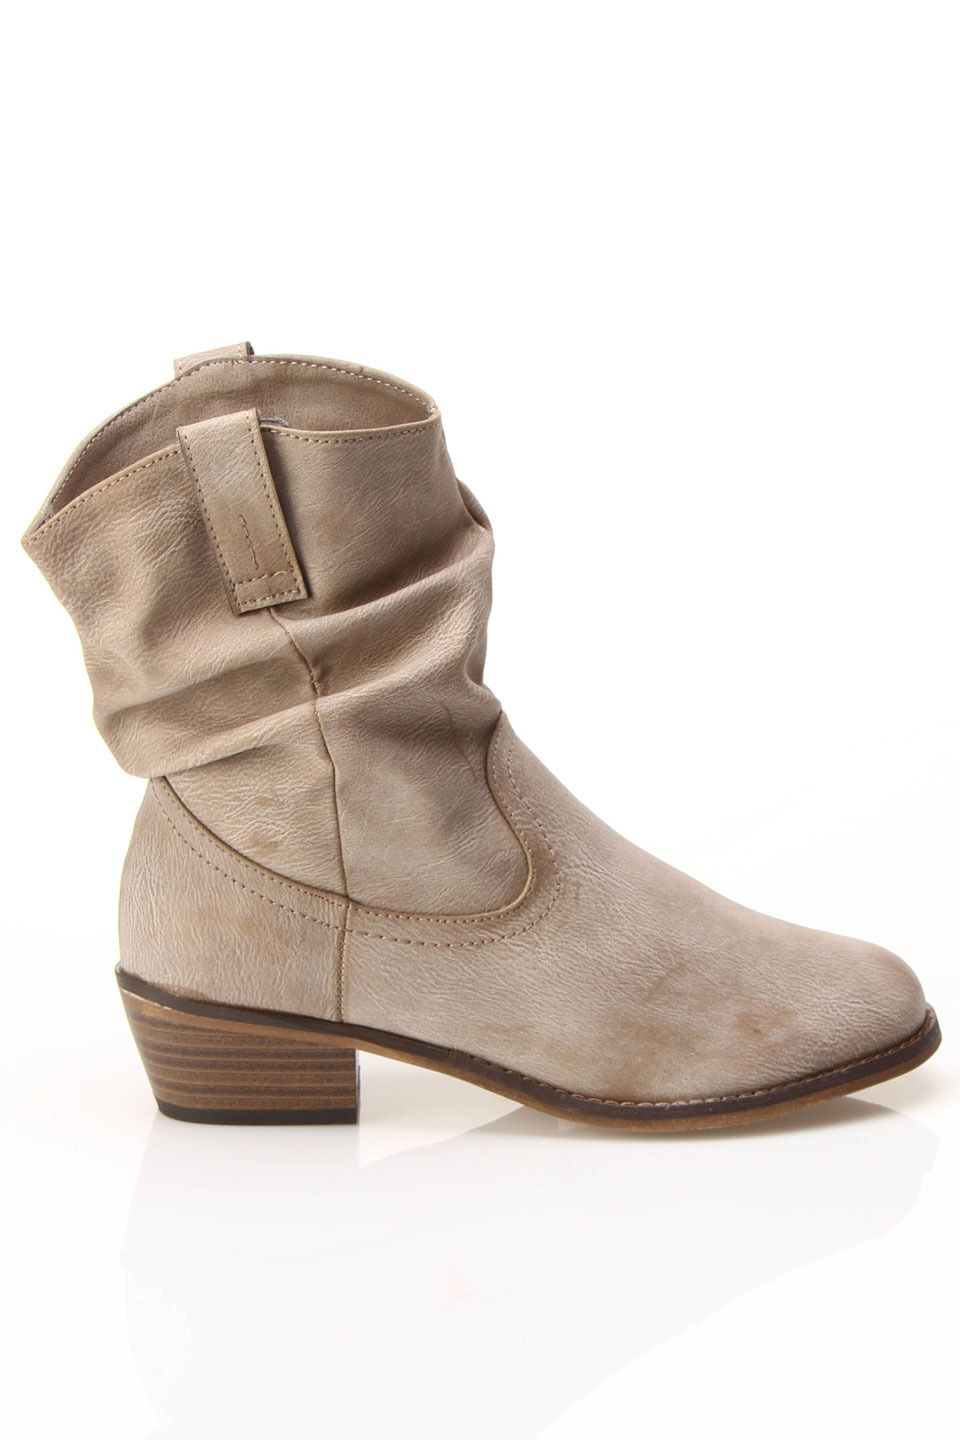 Dorado Boot- Just bought some but in a dark tan. So comfy.